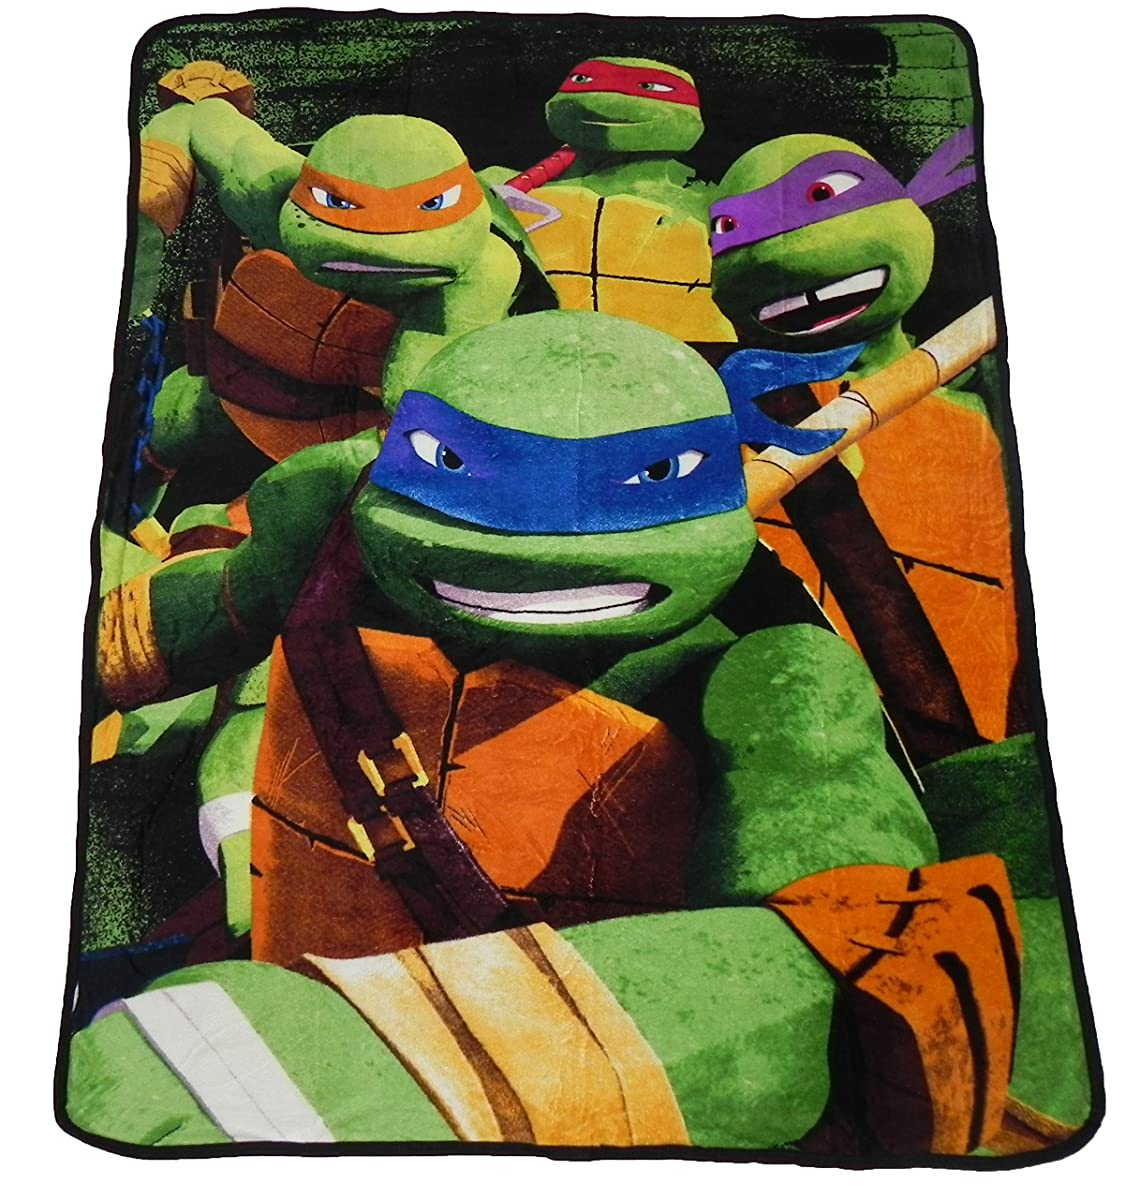 Teenage Mutant Ninja Turtles Micro Raschel Throw - 46